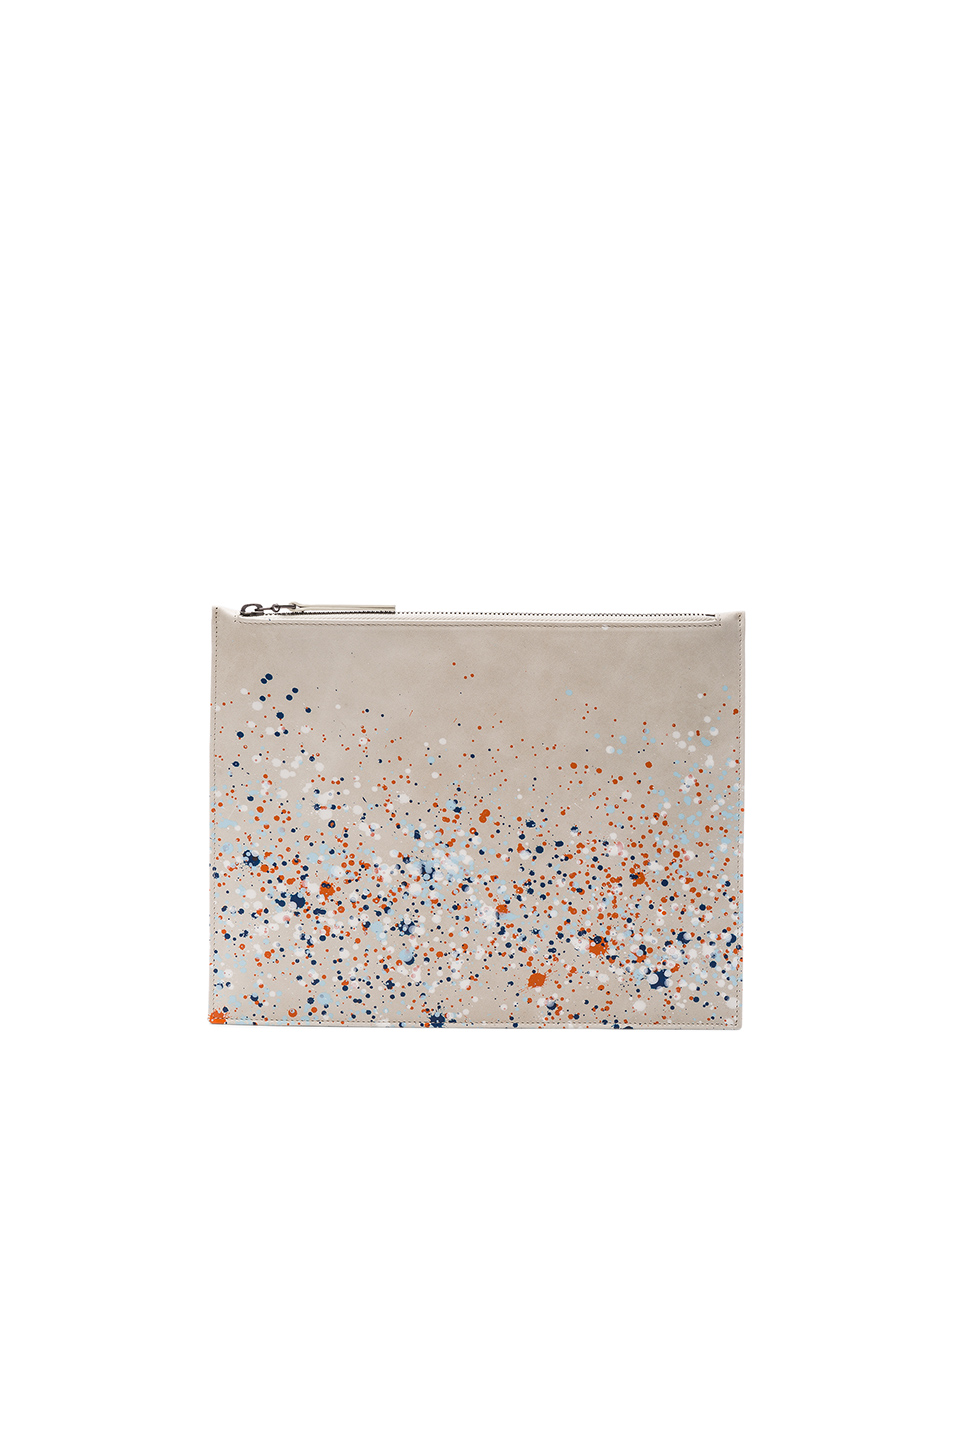 Maison Margiela Pollock Effect Pouch in Gray